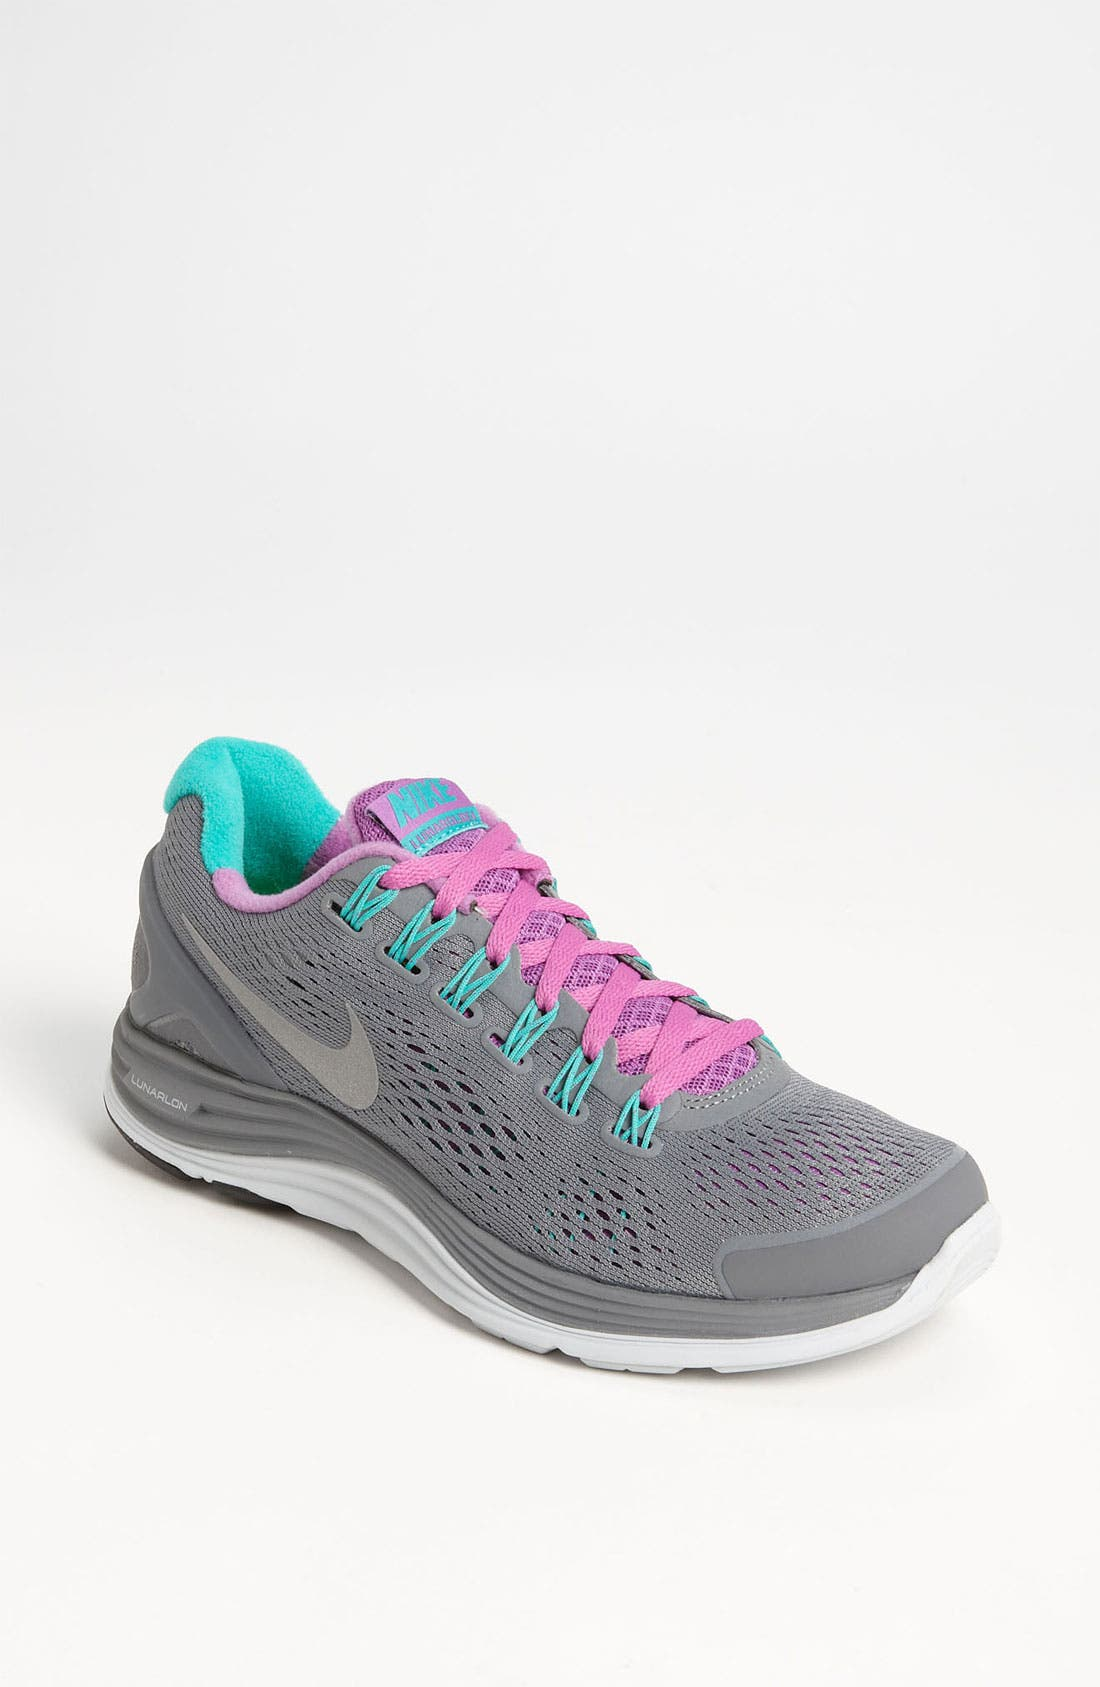 Main Image - Nike 'LunarGlide+ 4' Running Shoe (Women)